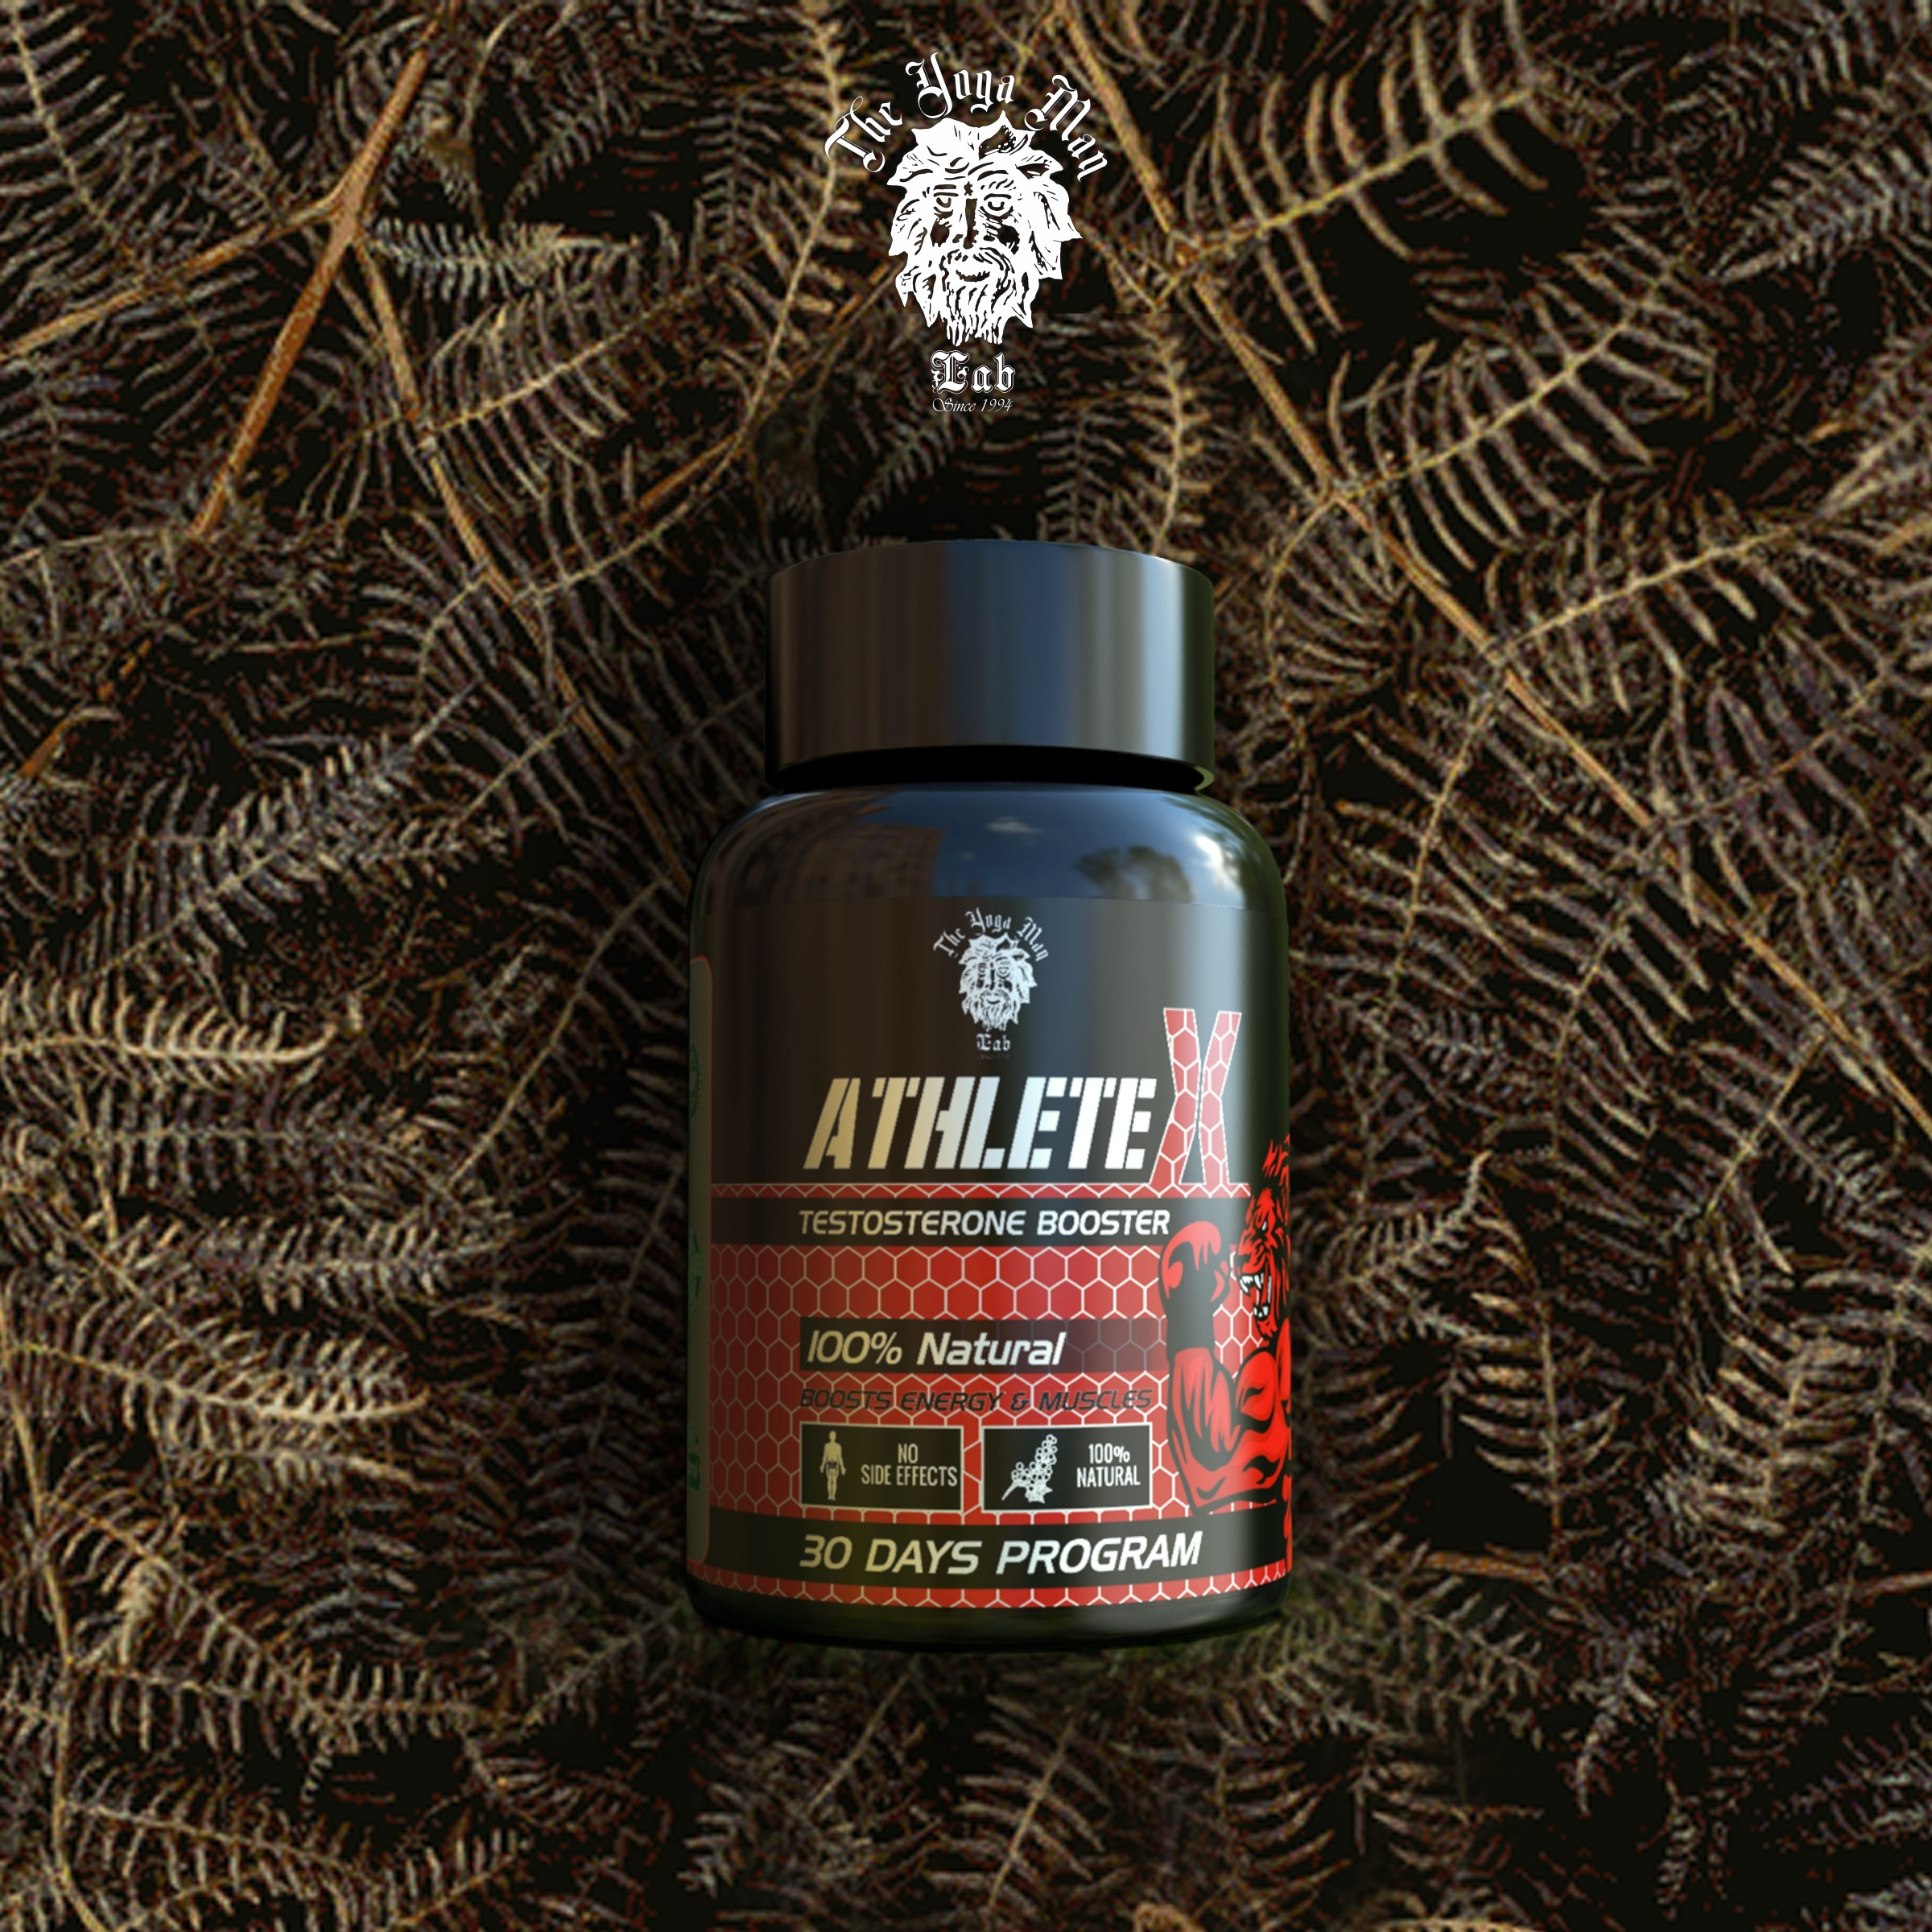 Athlete X - Natural Testosterone Booster for Men for